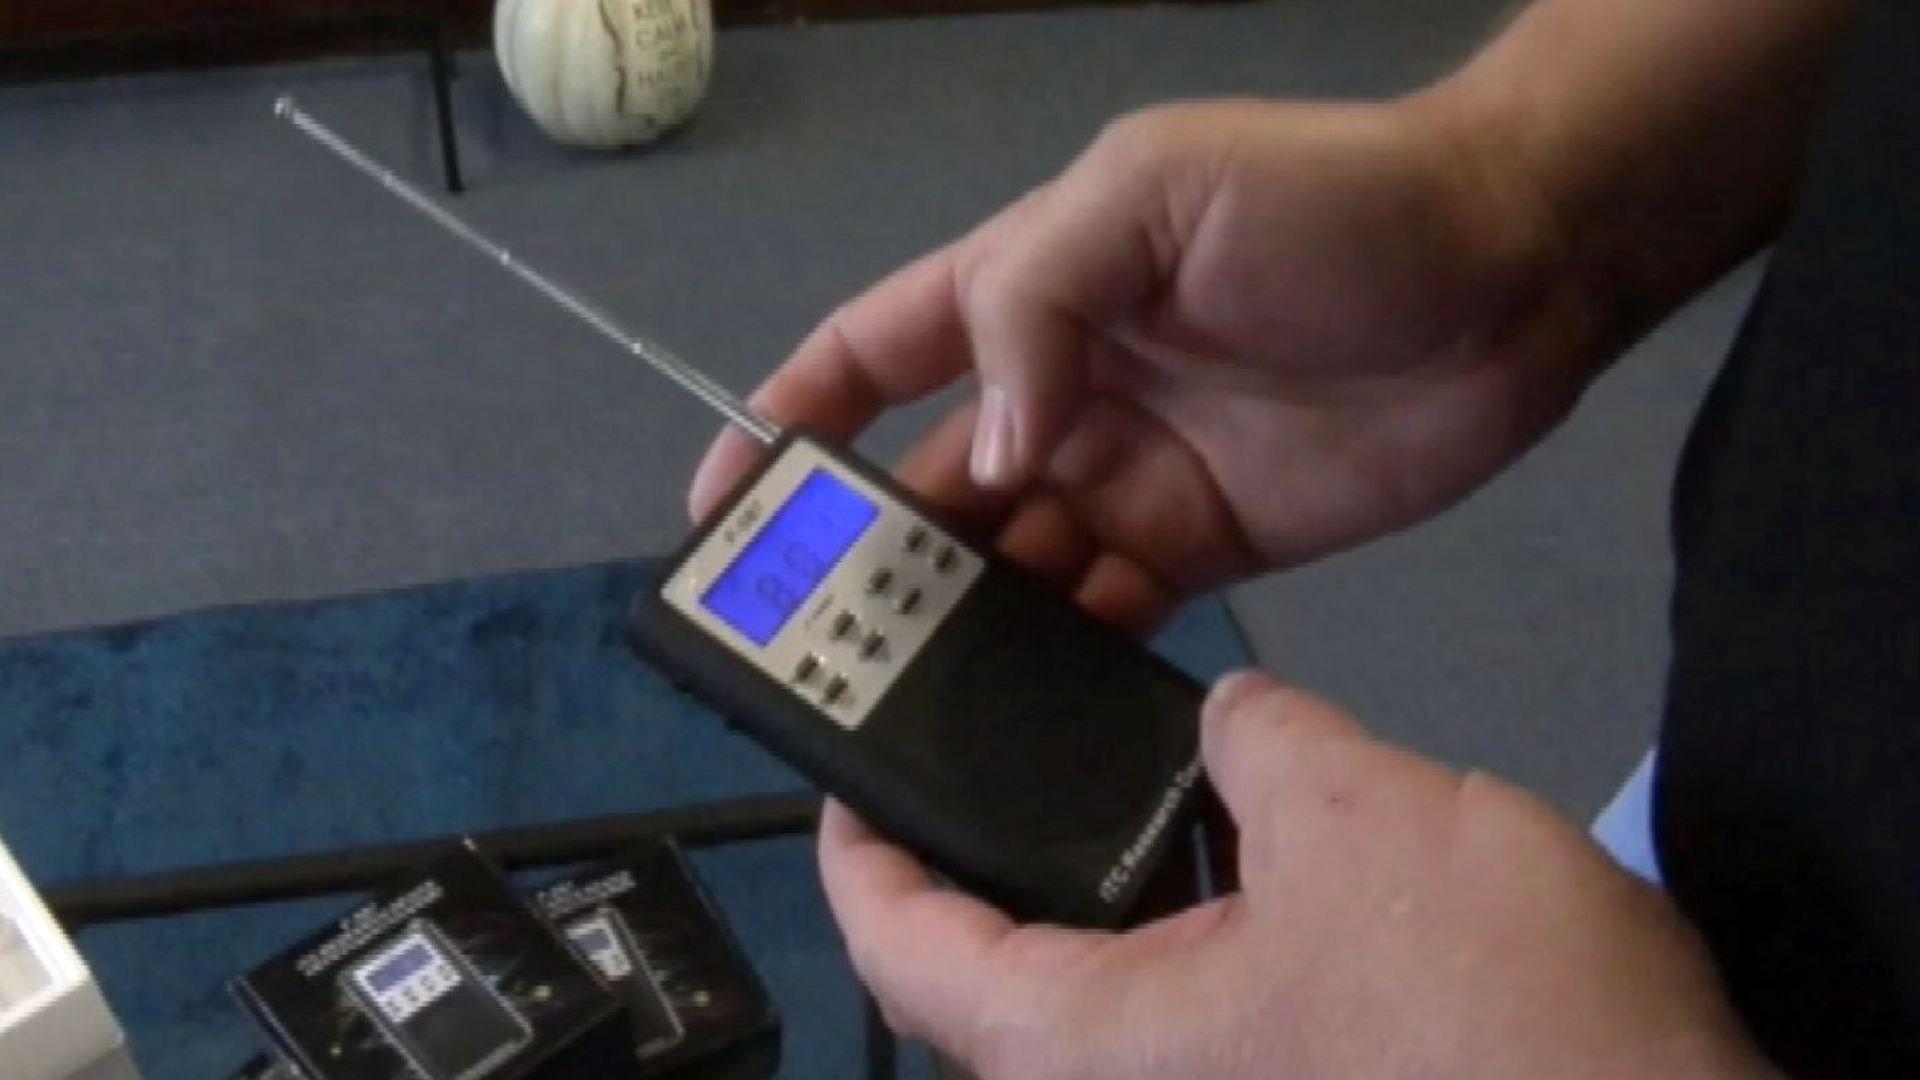 Ohio store specializes in equipping ghost hunters